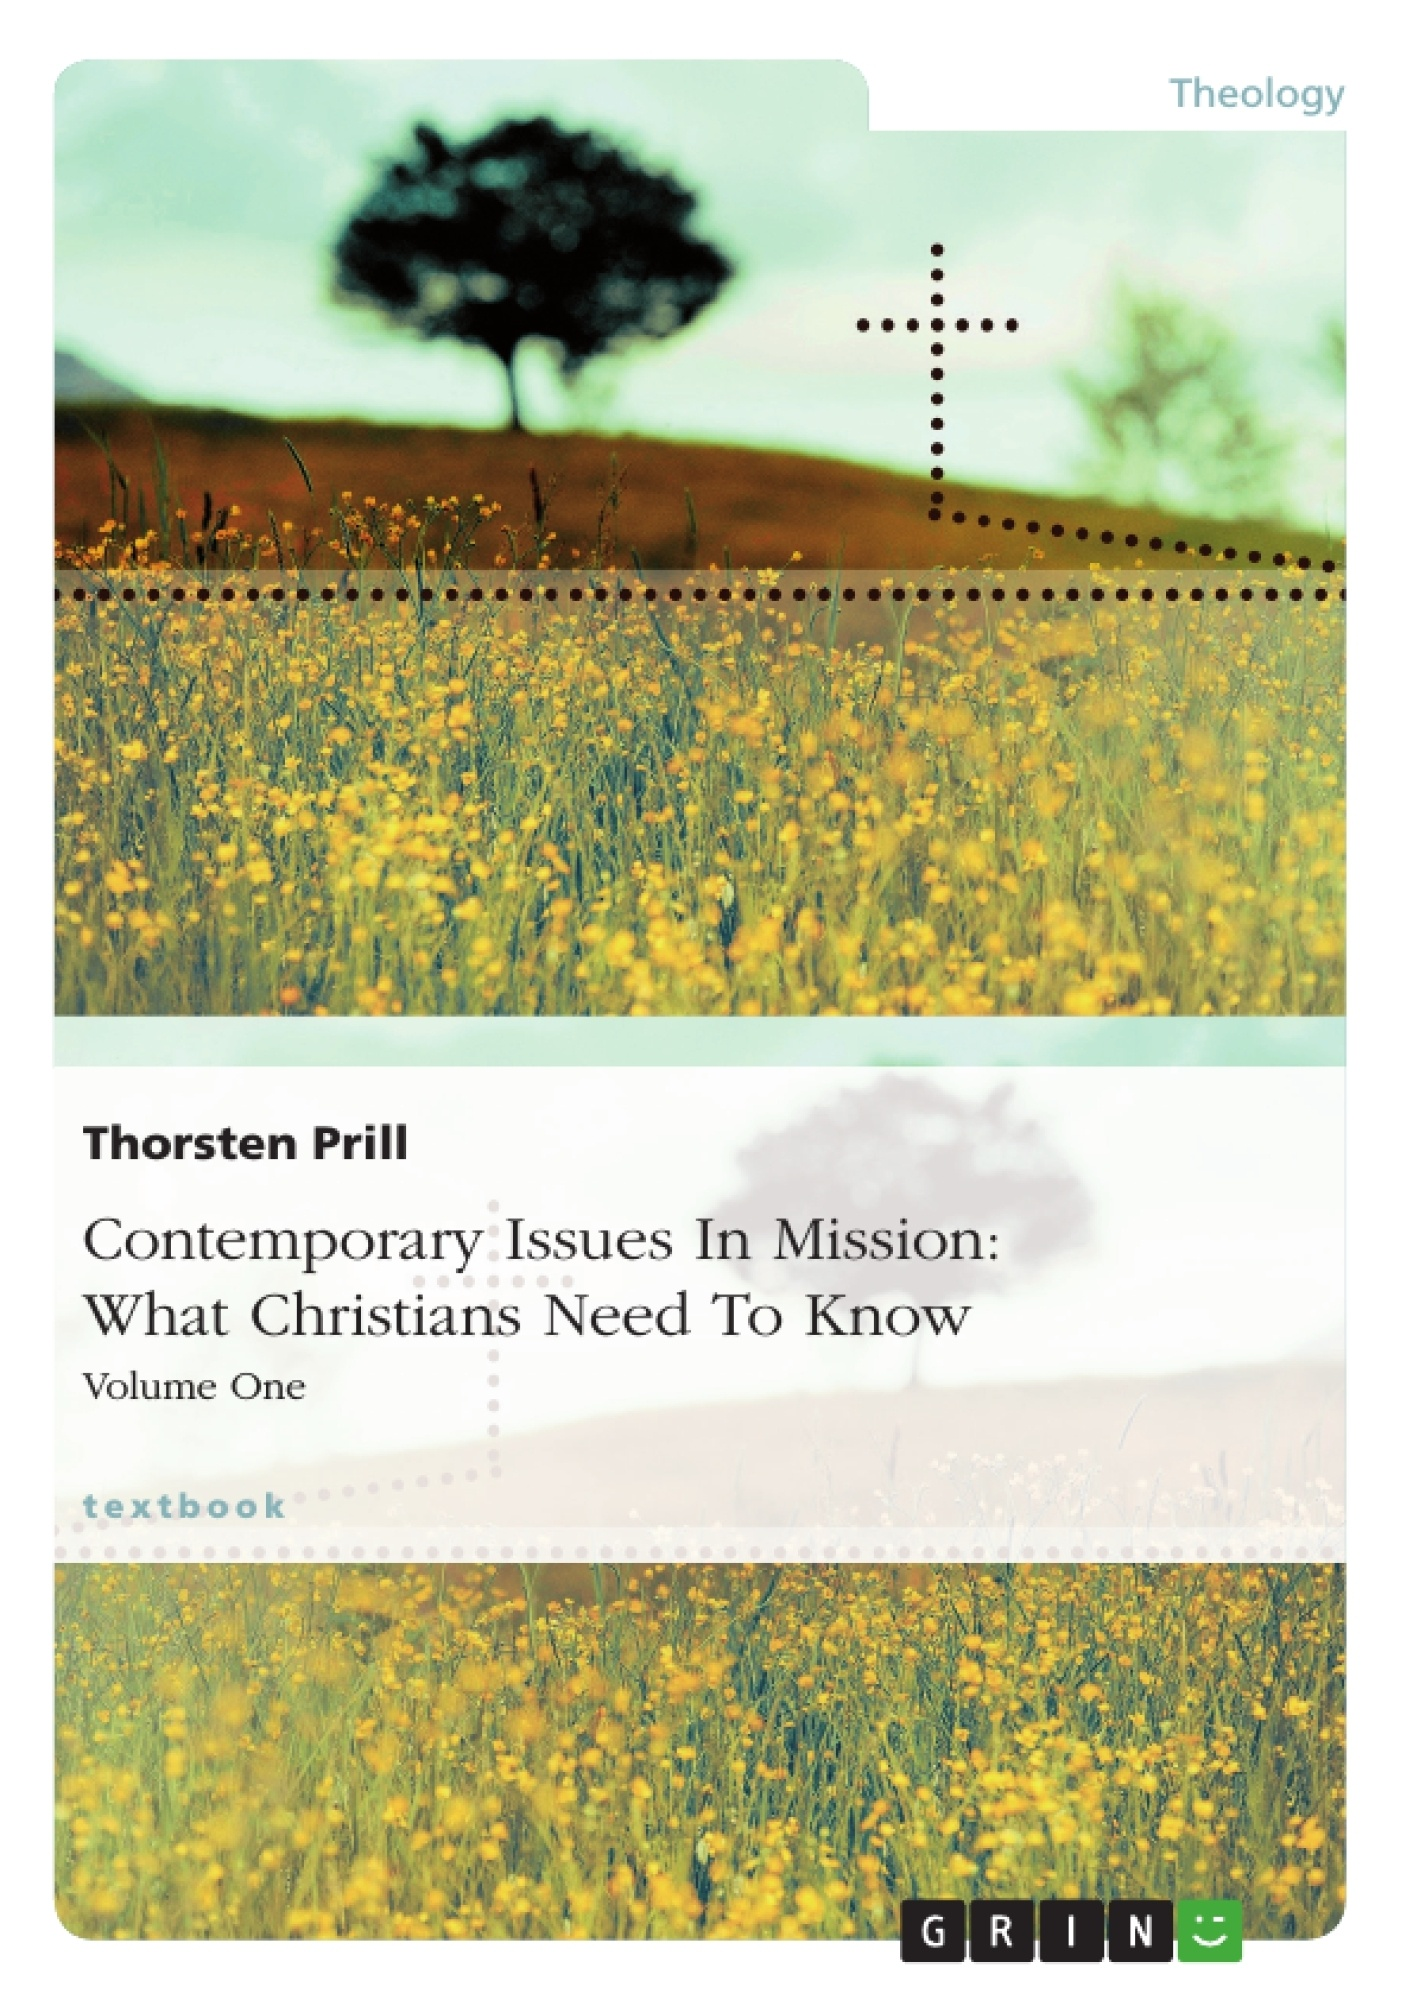 Title: Contemporary Issues In Mission: What Christians Need To Know